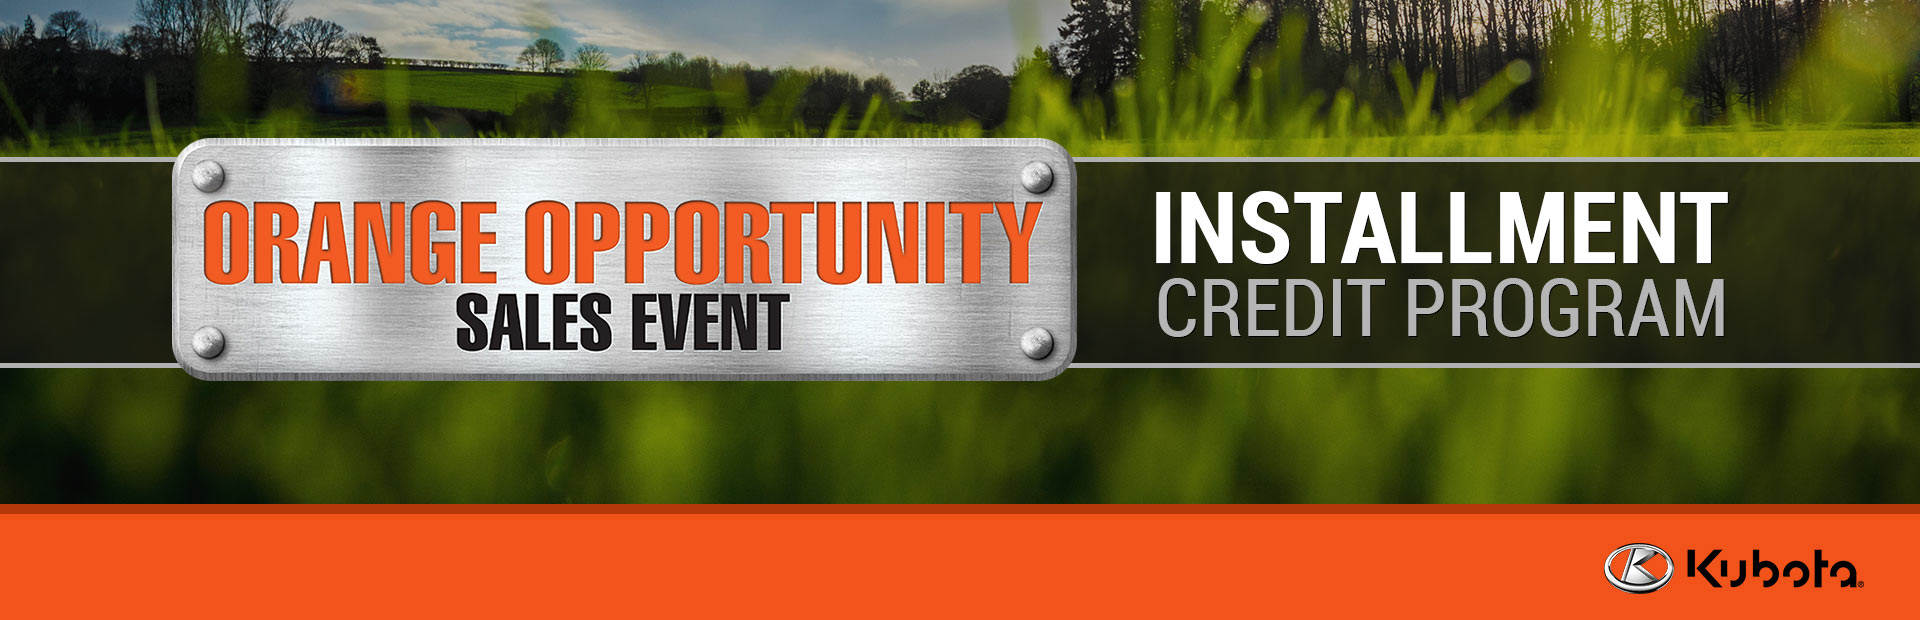 Kubota: Orange Opportunity - Installment Credit Promotion